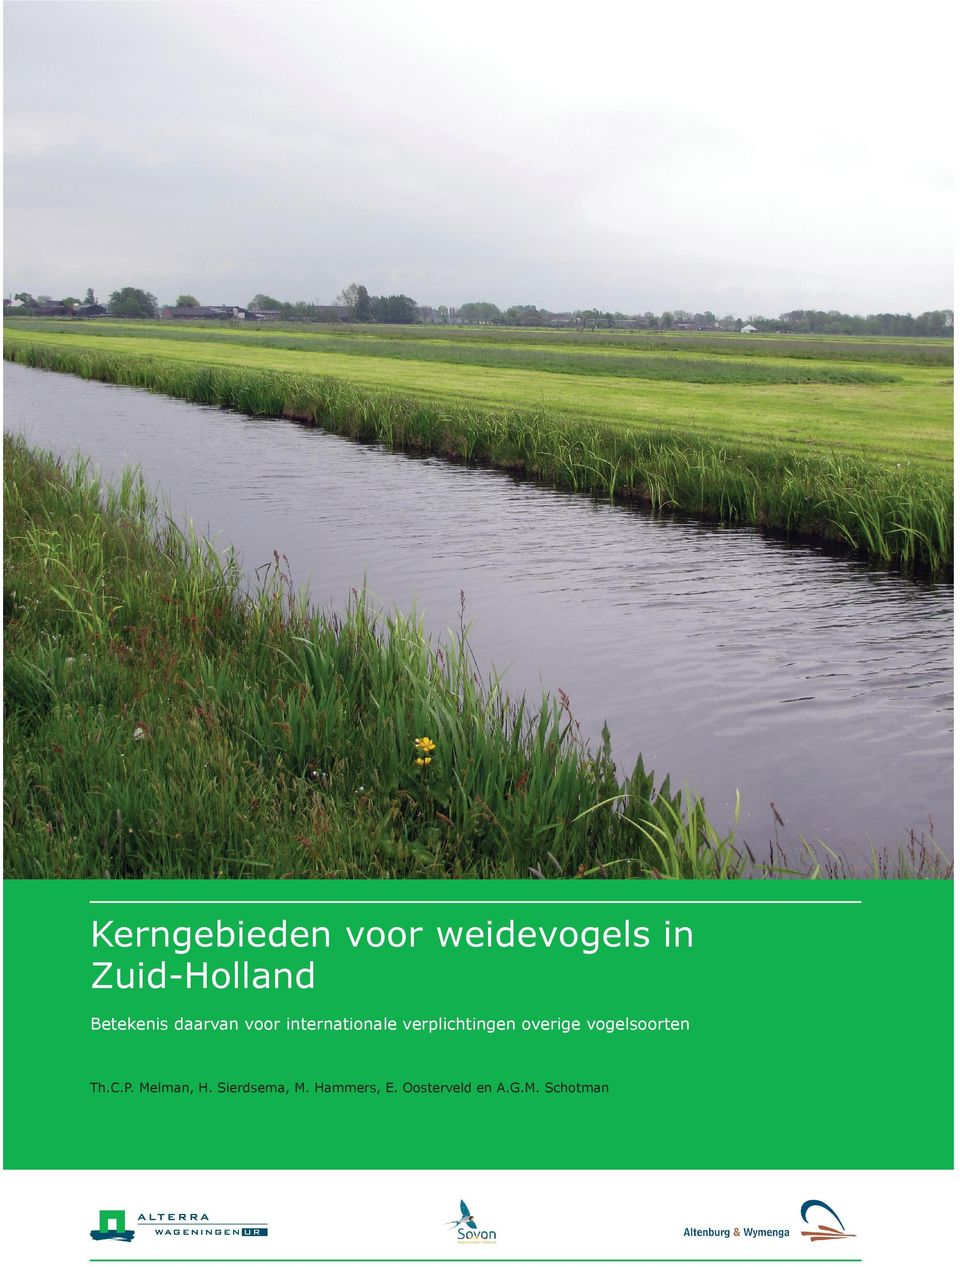 nl/alterra Alterra-rapport 2536 ISSN 1566-7197 De missie van Wageningen UR (University & Research centre) is To explore the potential of nature to improve the quality of life.